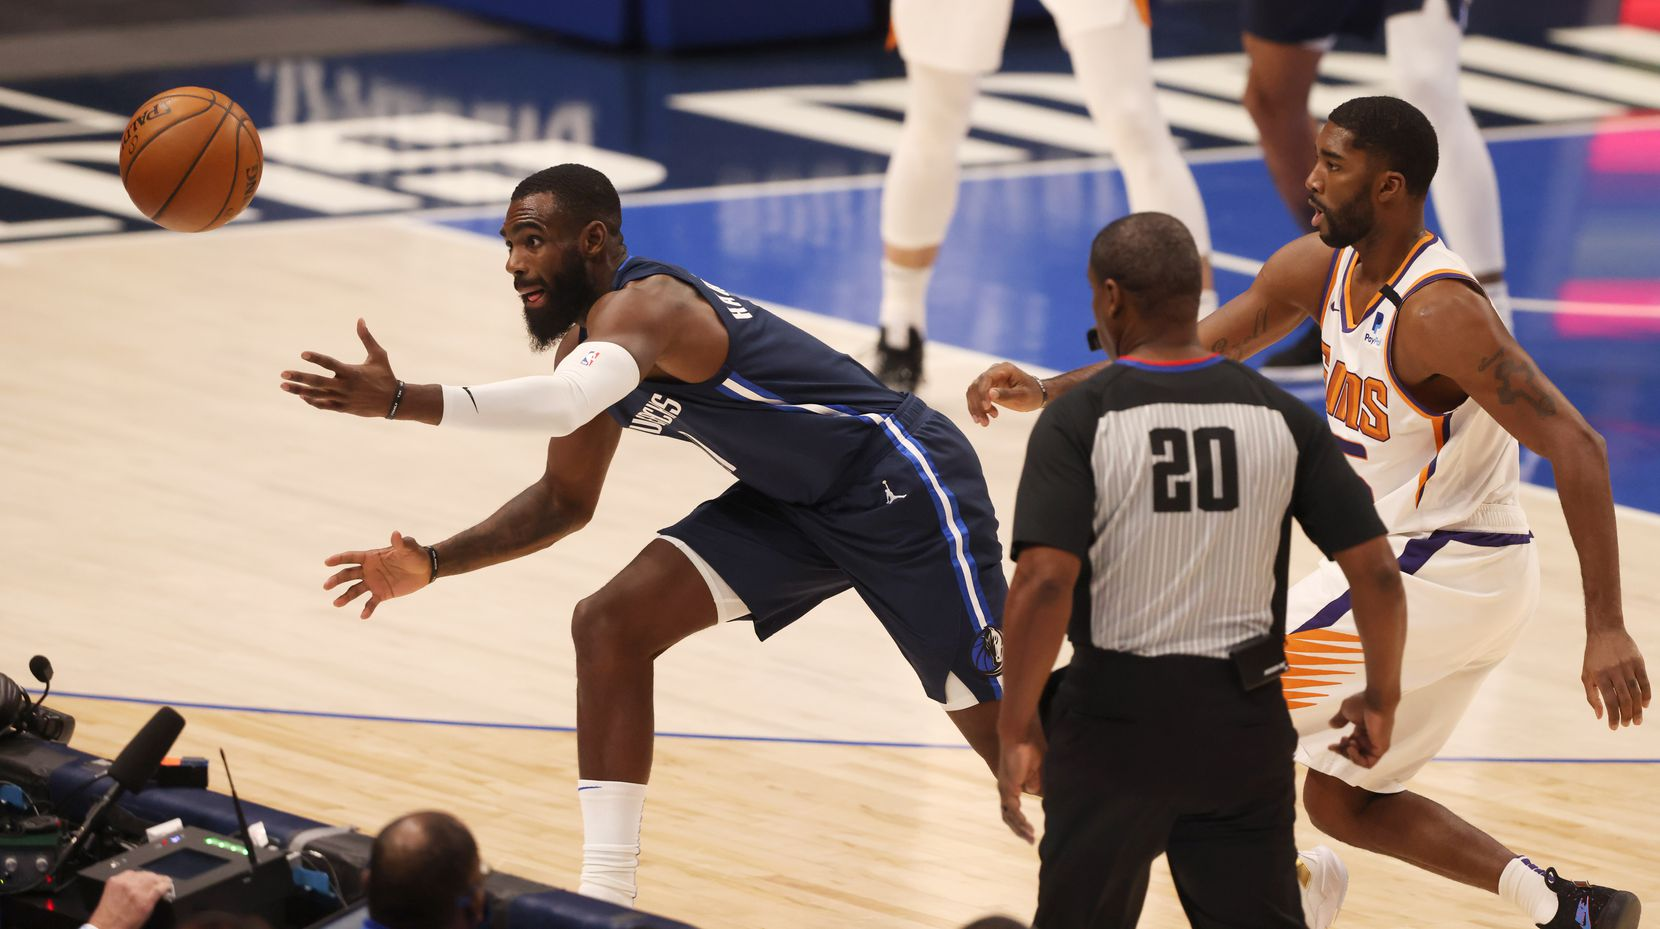 Dallas Mavericks forward Tim Hardaway Jr. (11) dives for a loose ball in front of Phoenix Suns guard E'Twaun Moore (55) during the first quarter of play at American Airlines Center on Monday, February 1, 2021in Dallas. (Vernon Bryant/The Dallas Morning News)